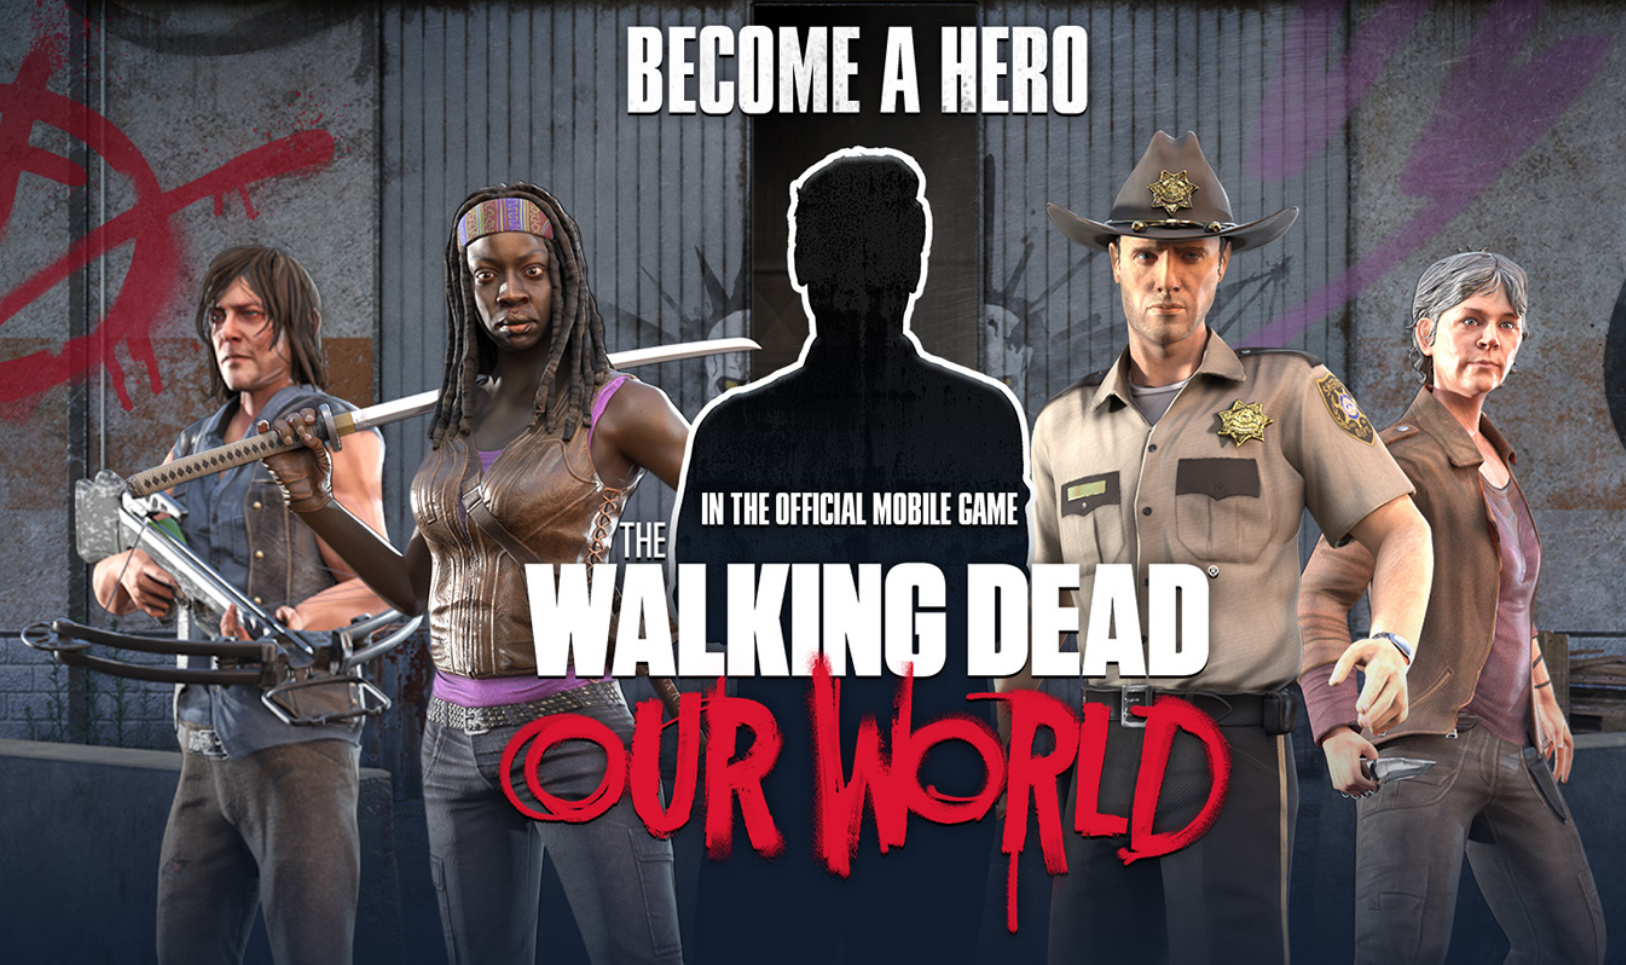 """Enter the The Walking Dead Our World Contest for your chance to win Free tickets to New York Comic Con plus your change to appear in """"The Walking Dead Our World"""" video game"""